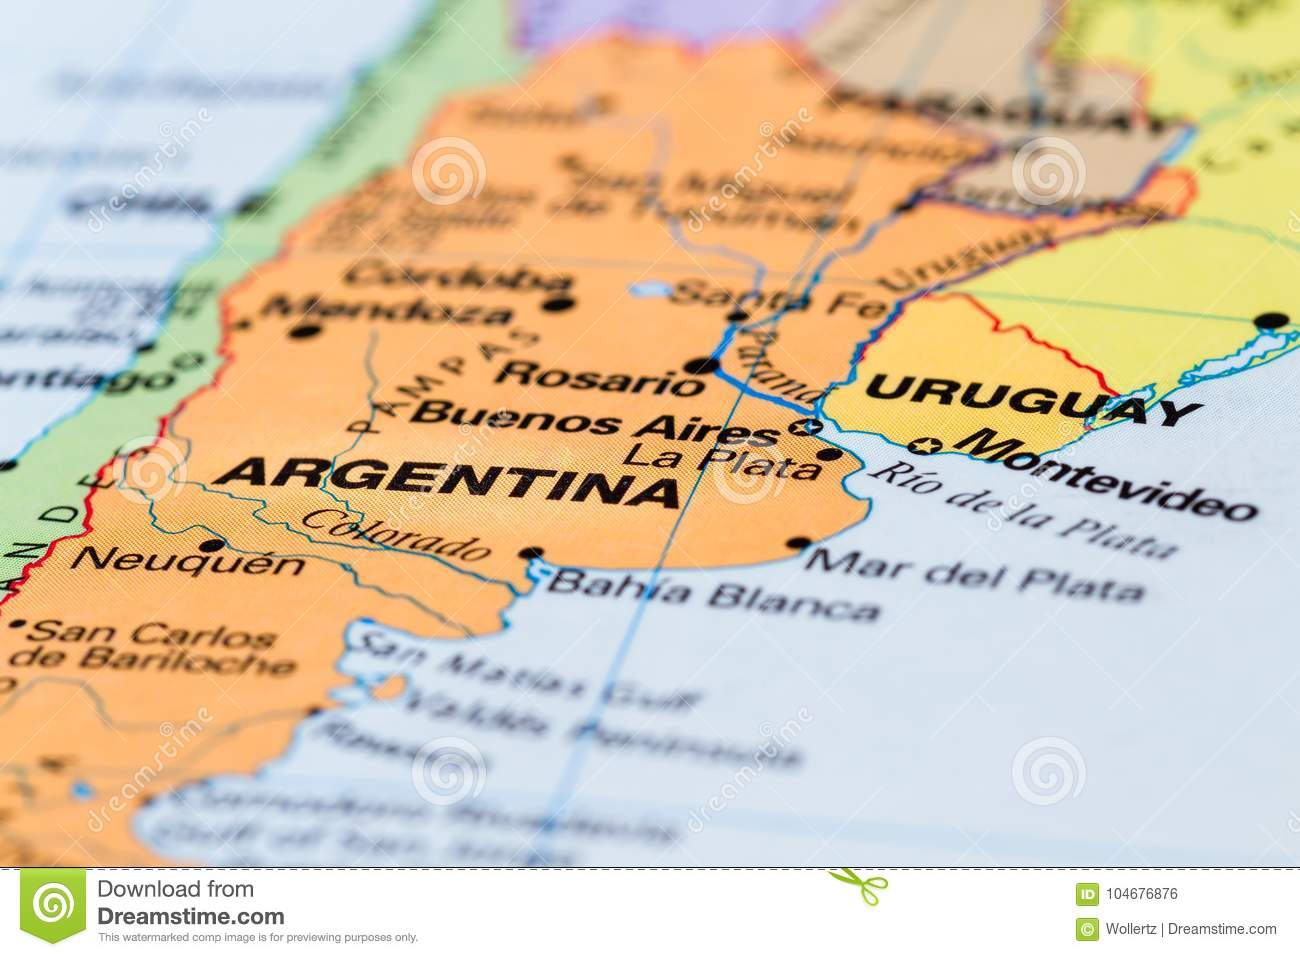 Argentina on a map stock photo. Image of object, detail - 104676876